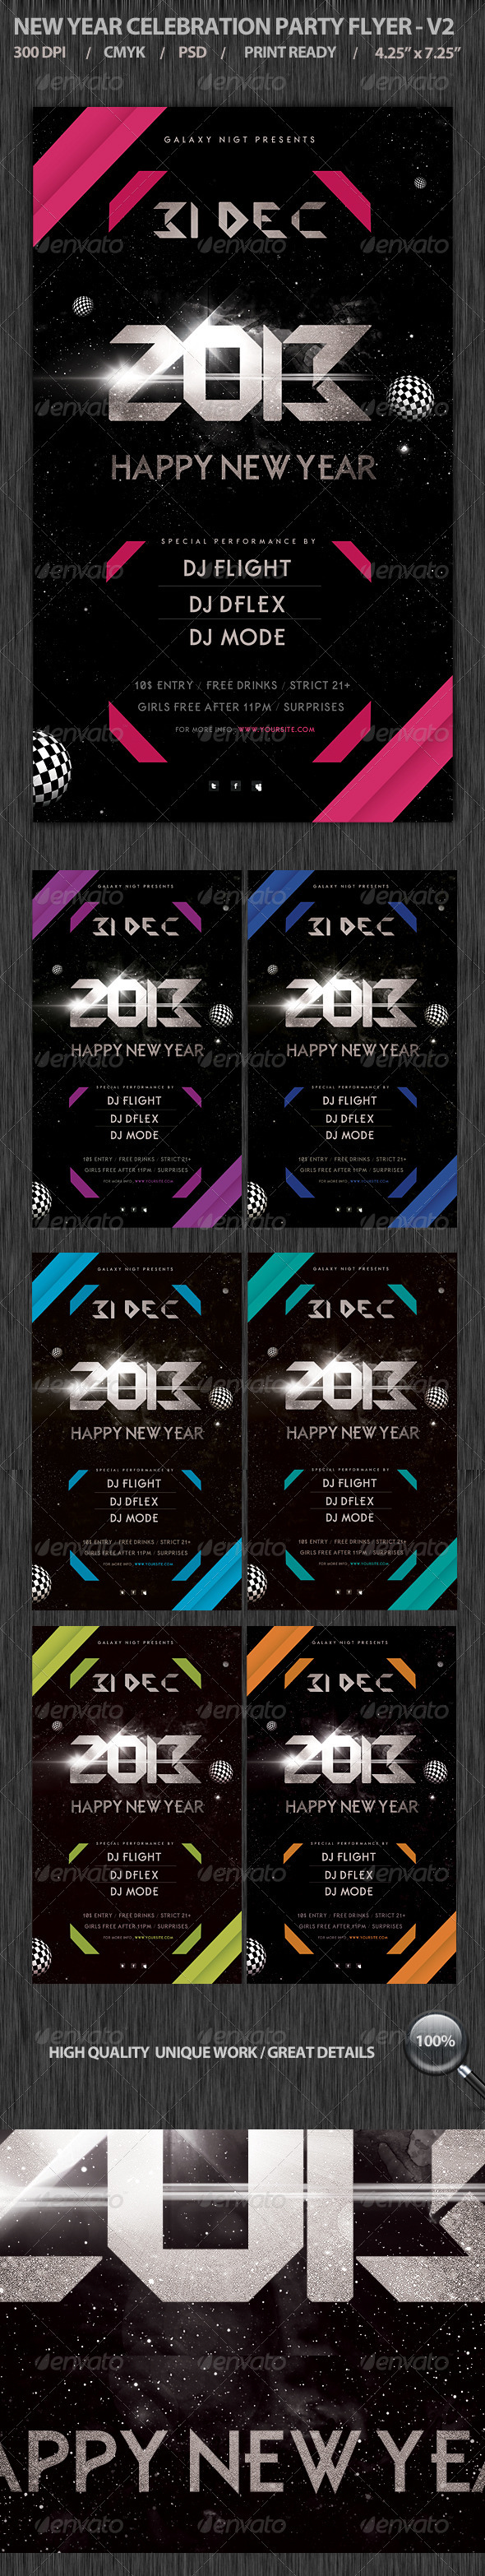 GraphicRiver New Year Eve Party Flyer V2 3605479